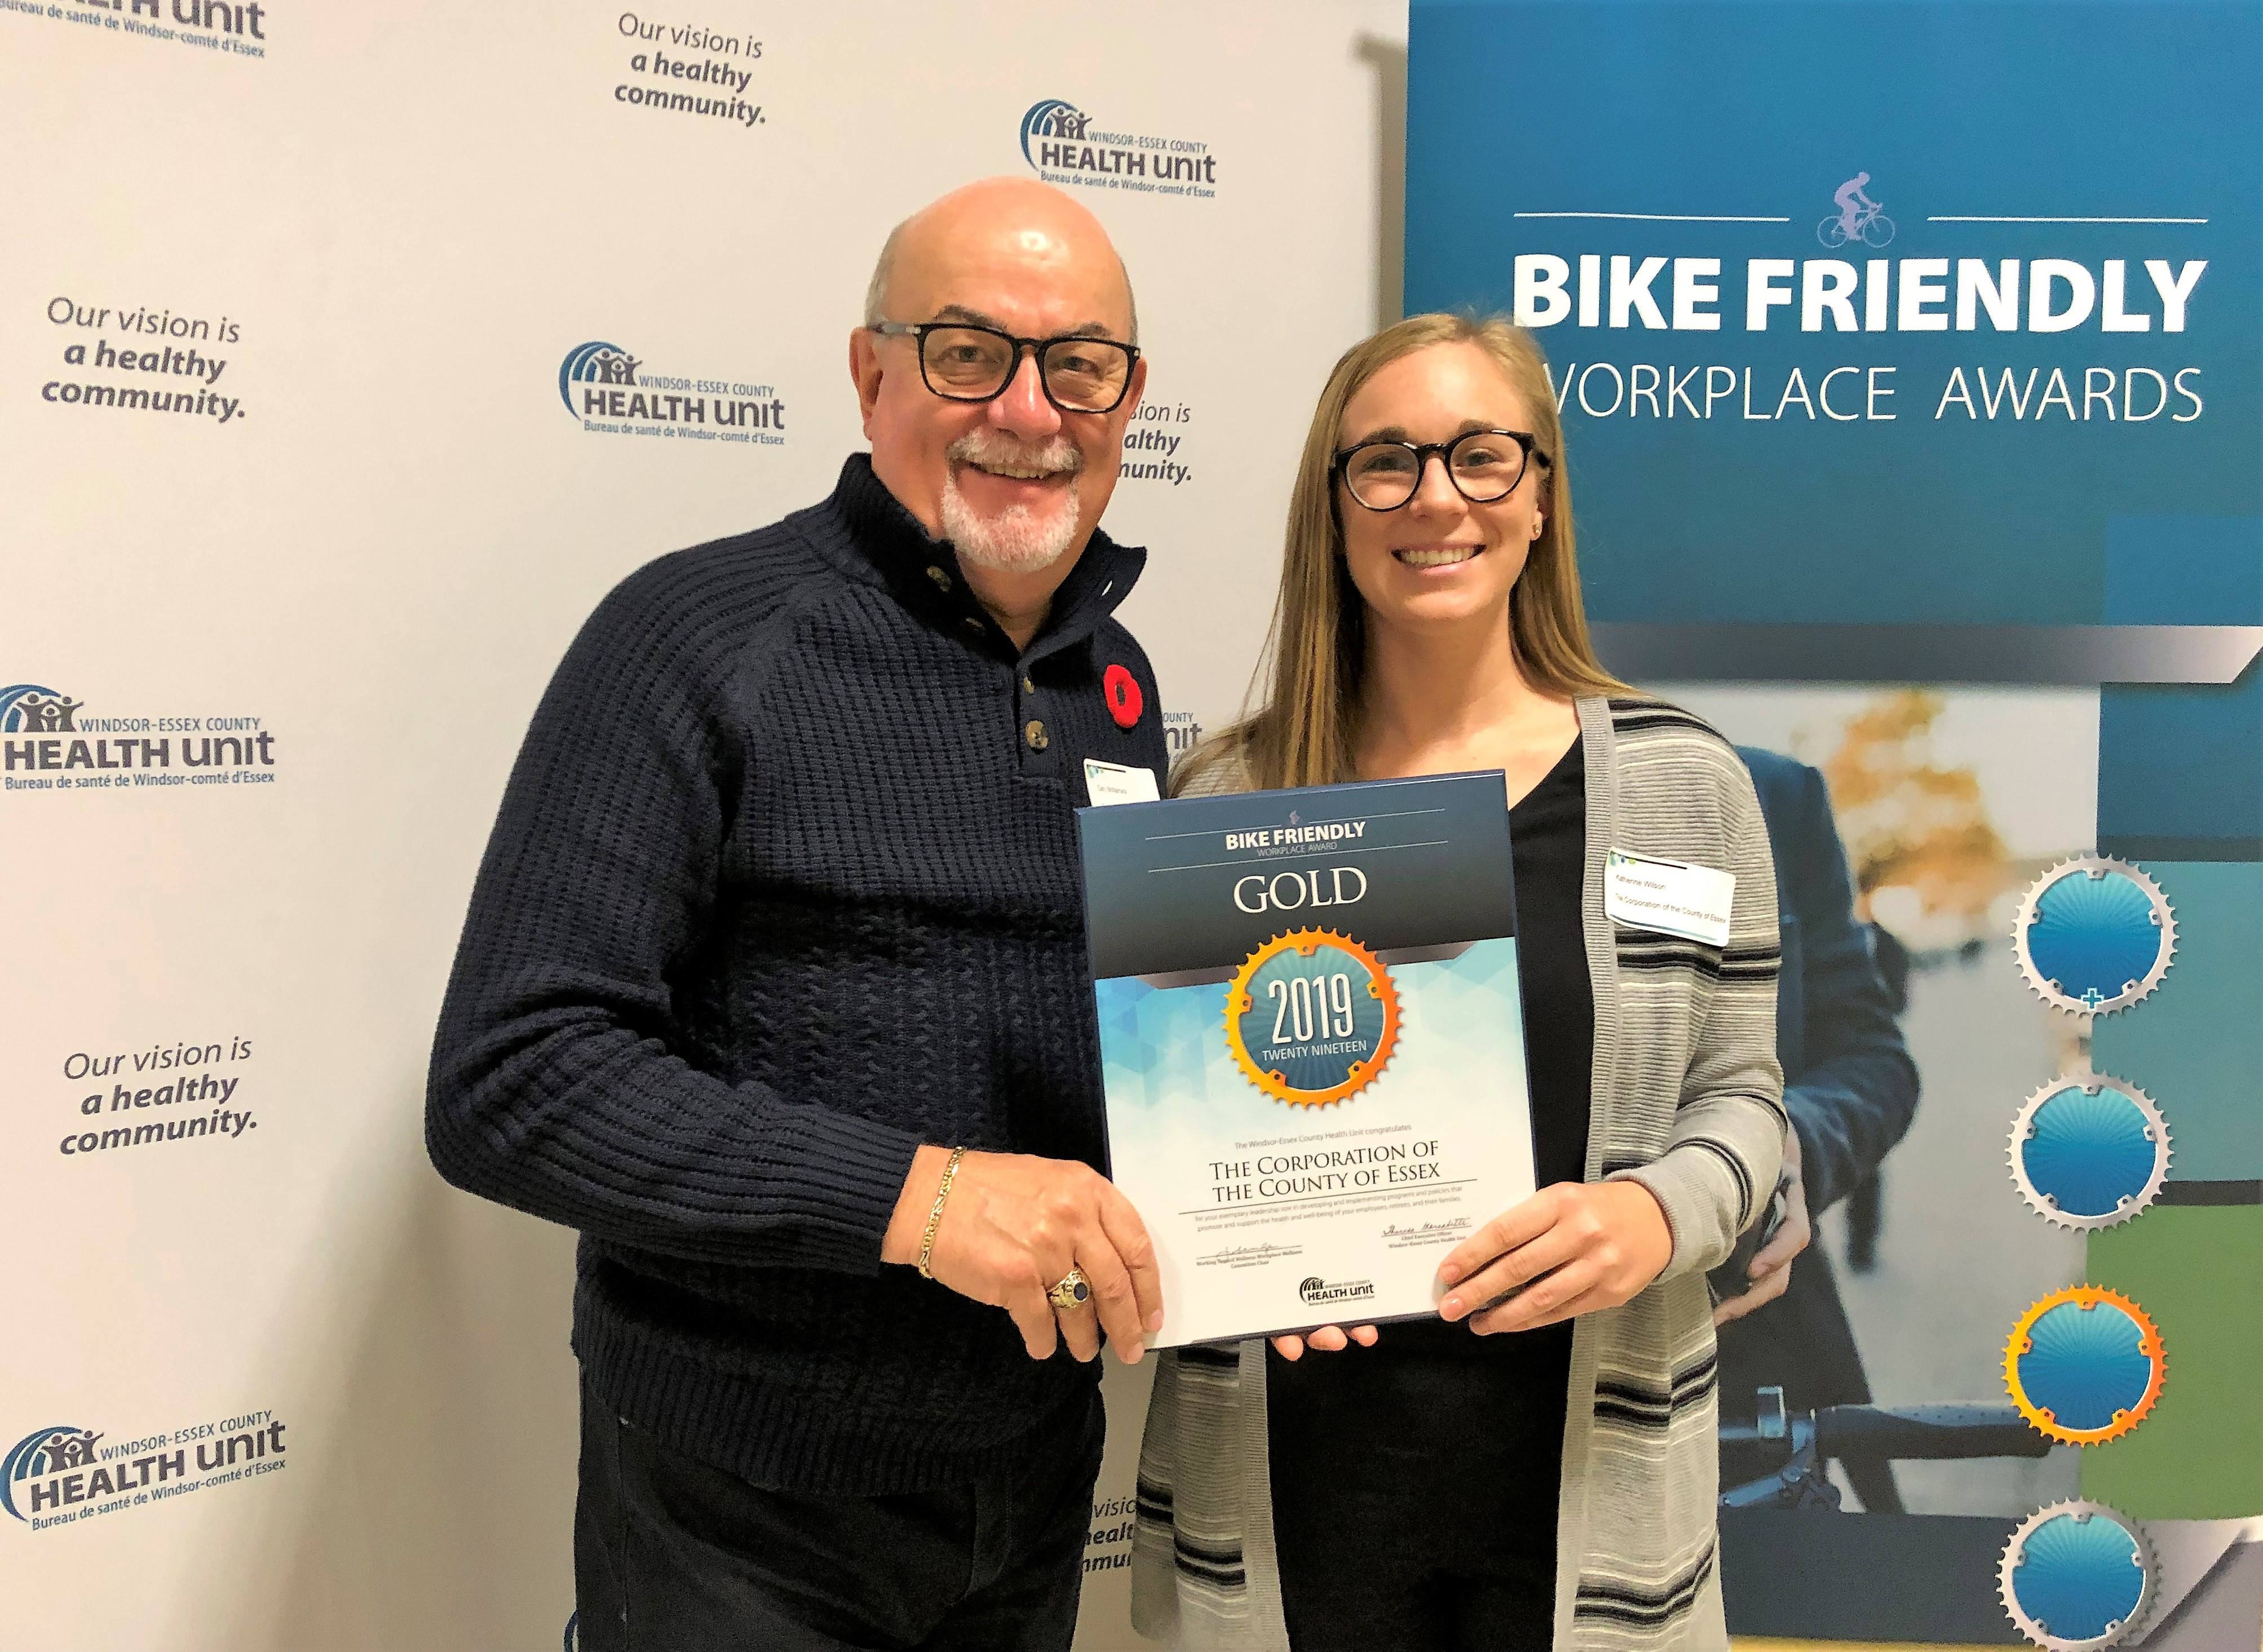 Warden Gary McNamara and Active Transportation Coordinator Katherine Wilson hold a 2019 Gold Bike Friendly Workplace Award